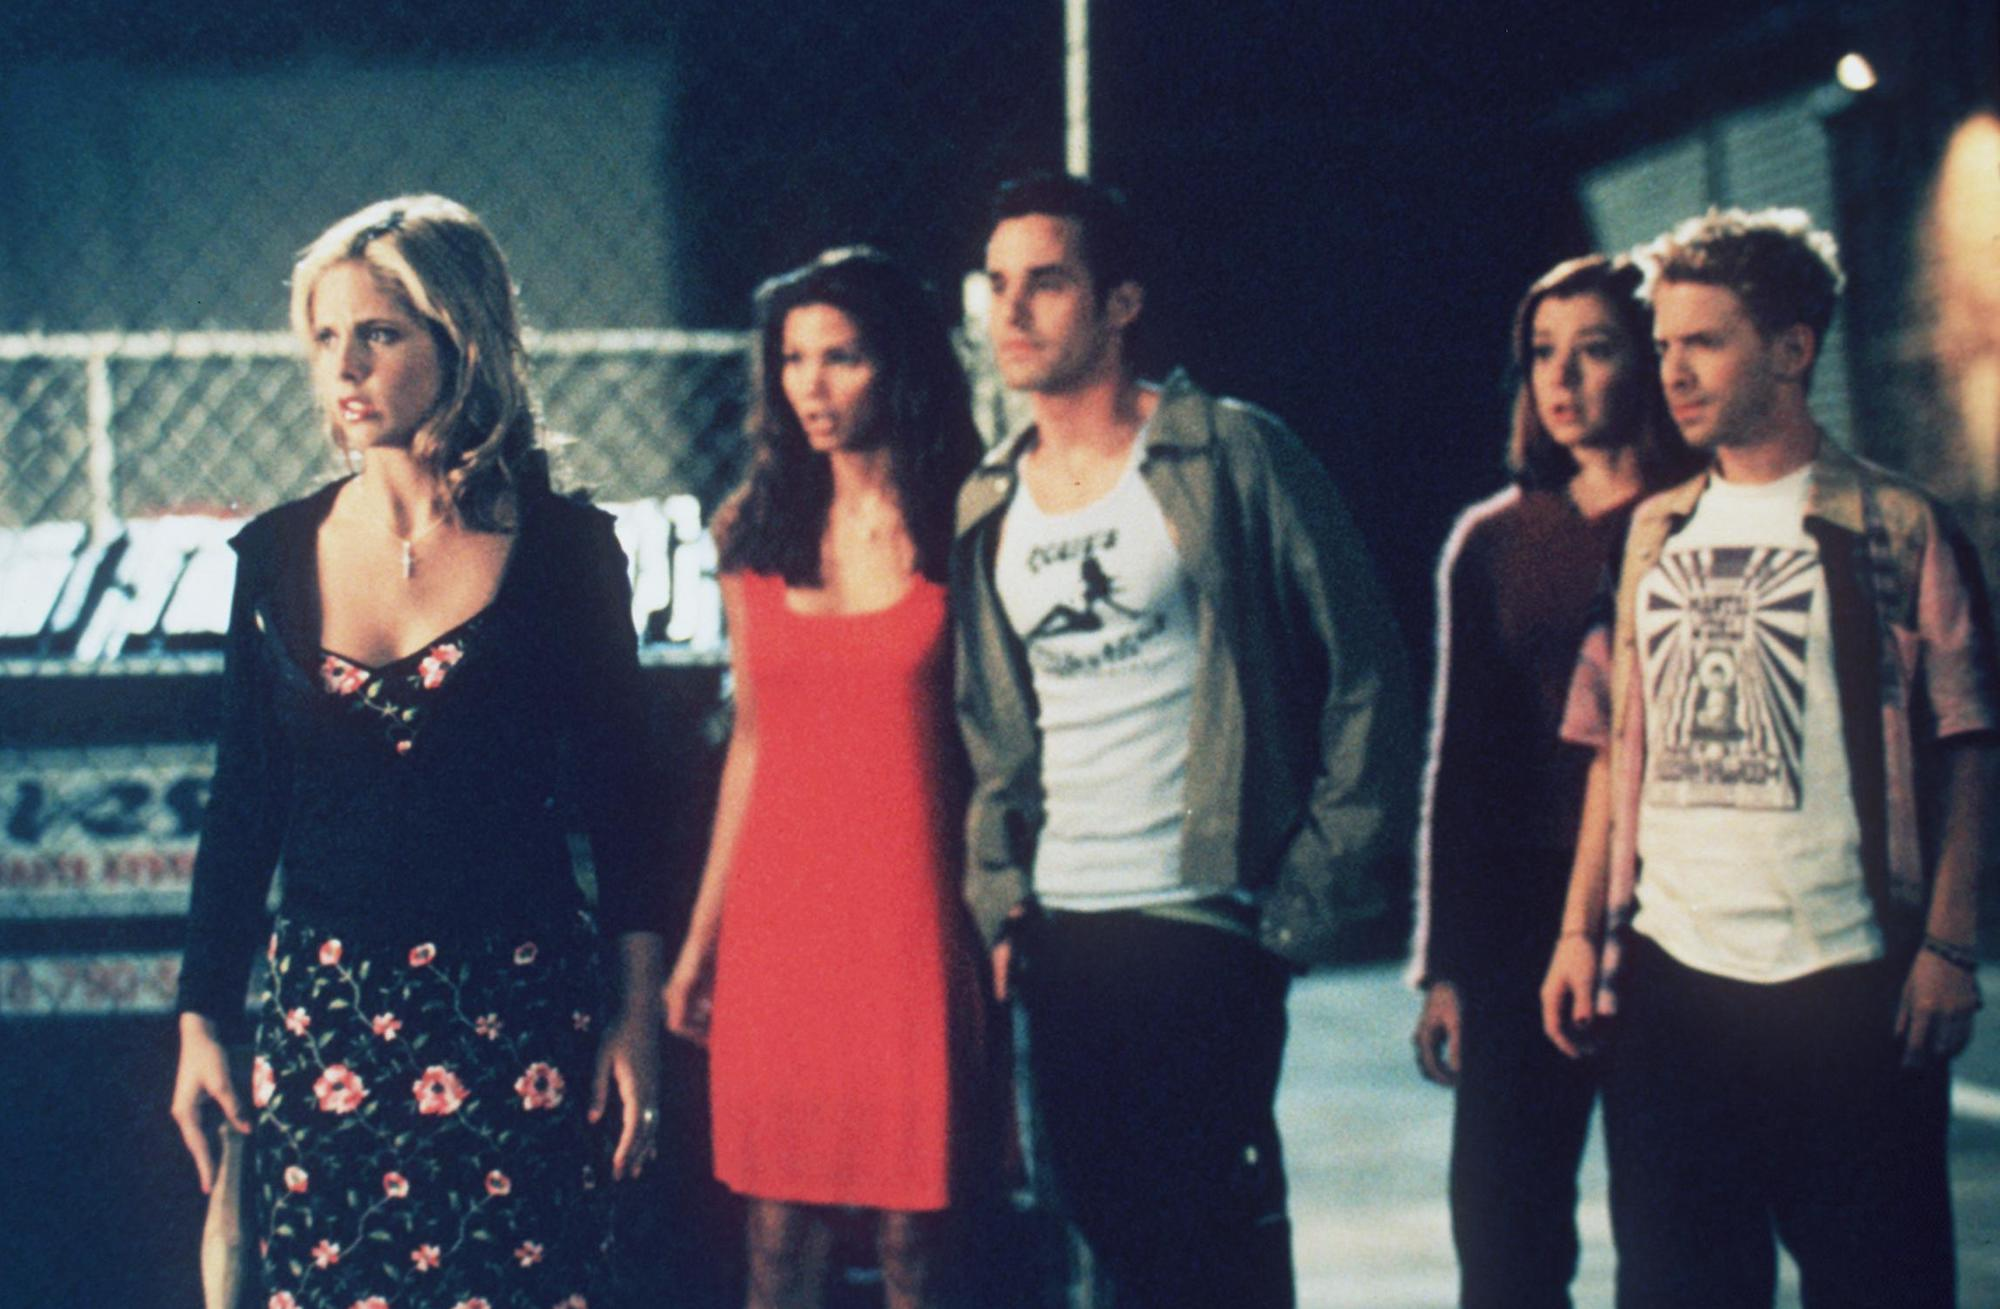 The team of 1998 'Buffy The Vampire Slayer'.